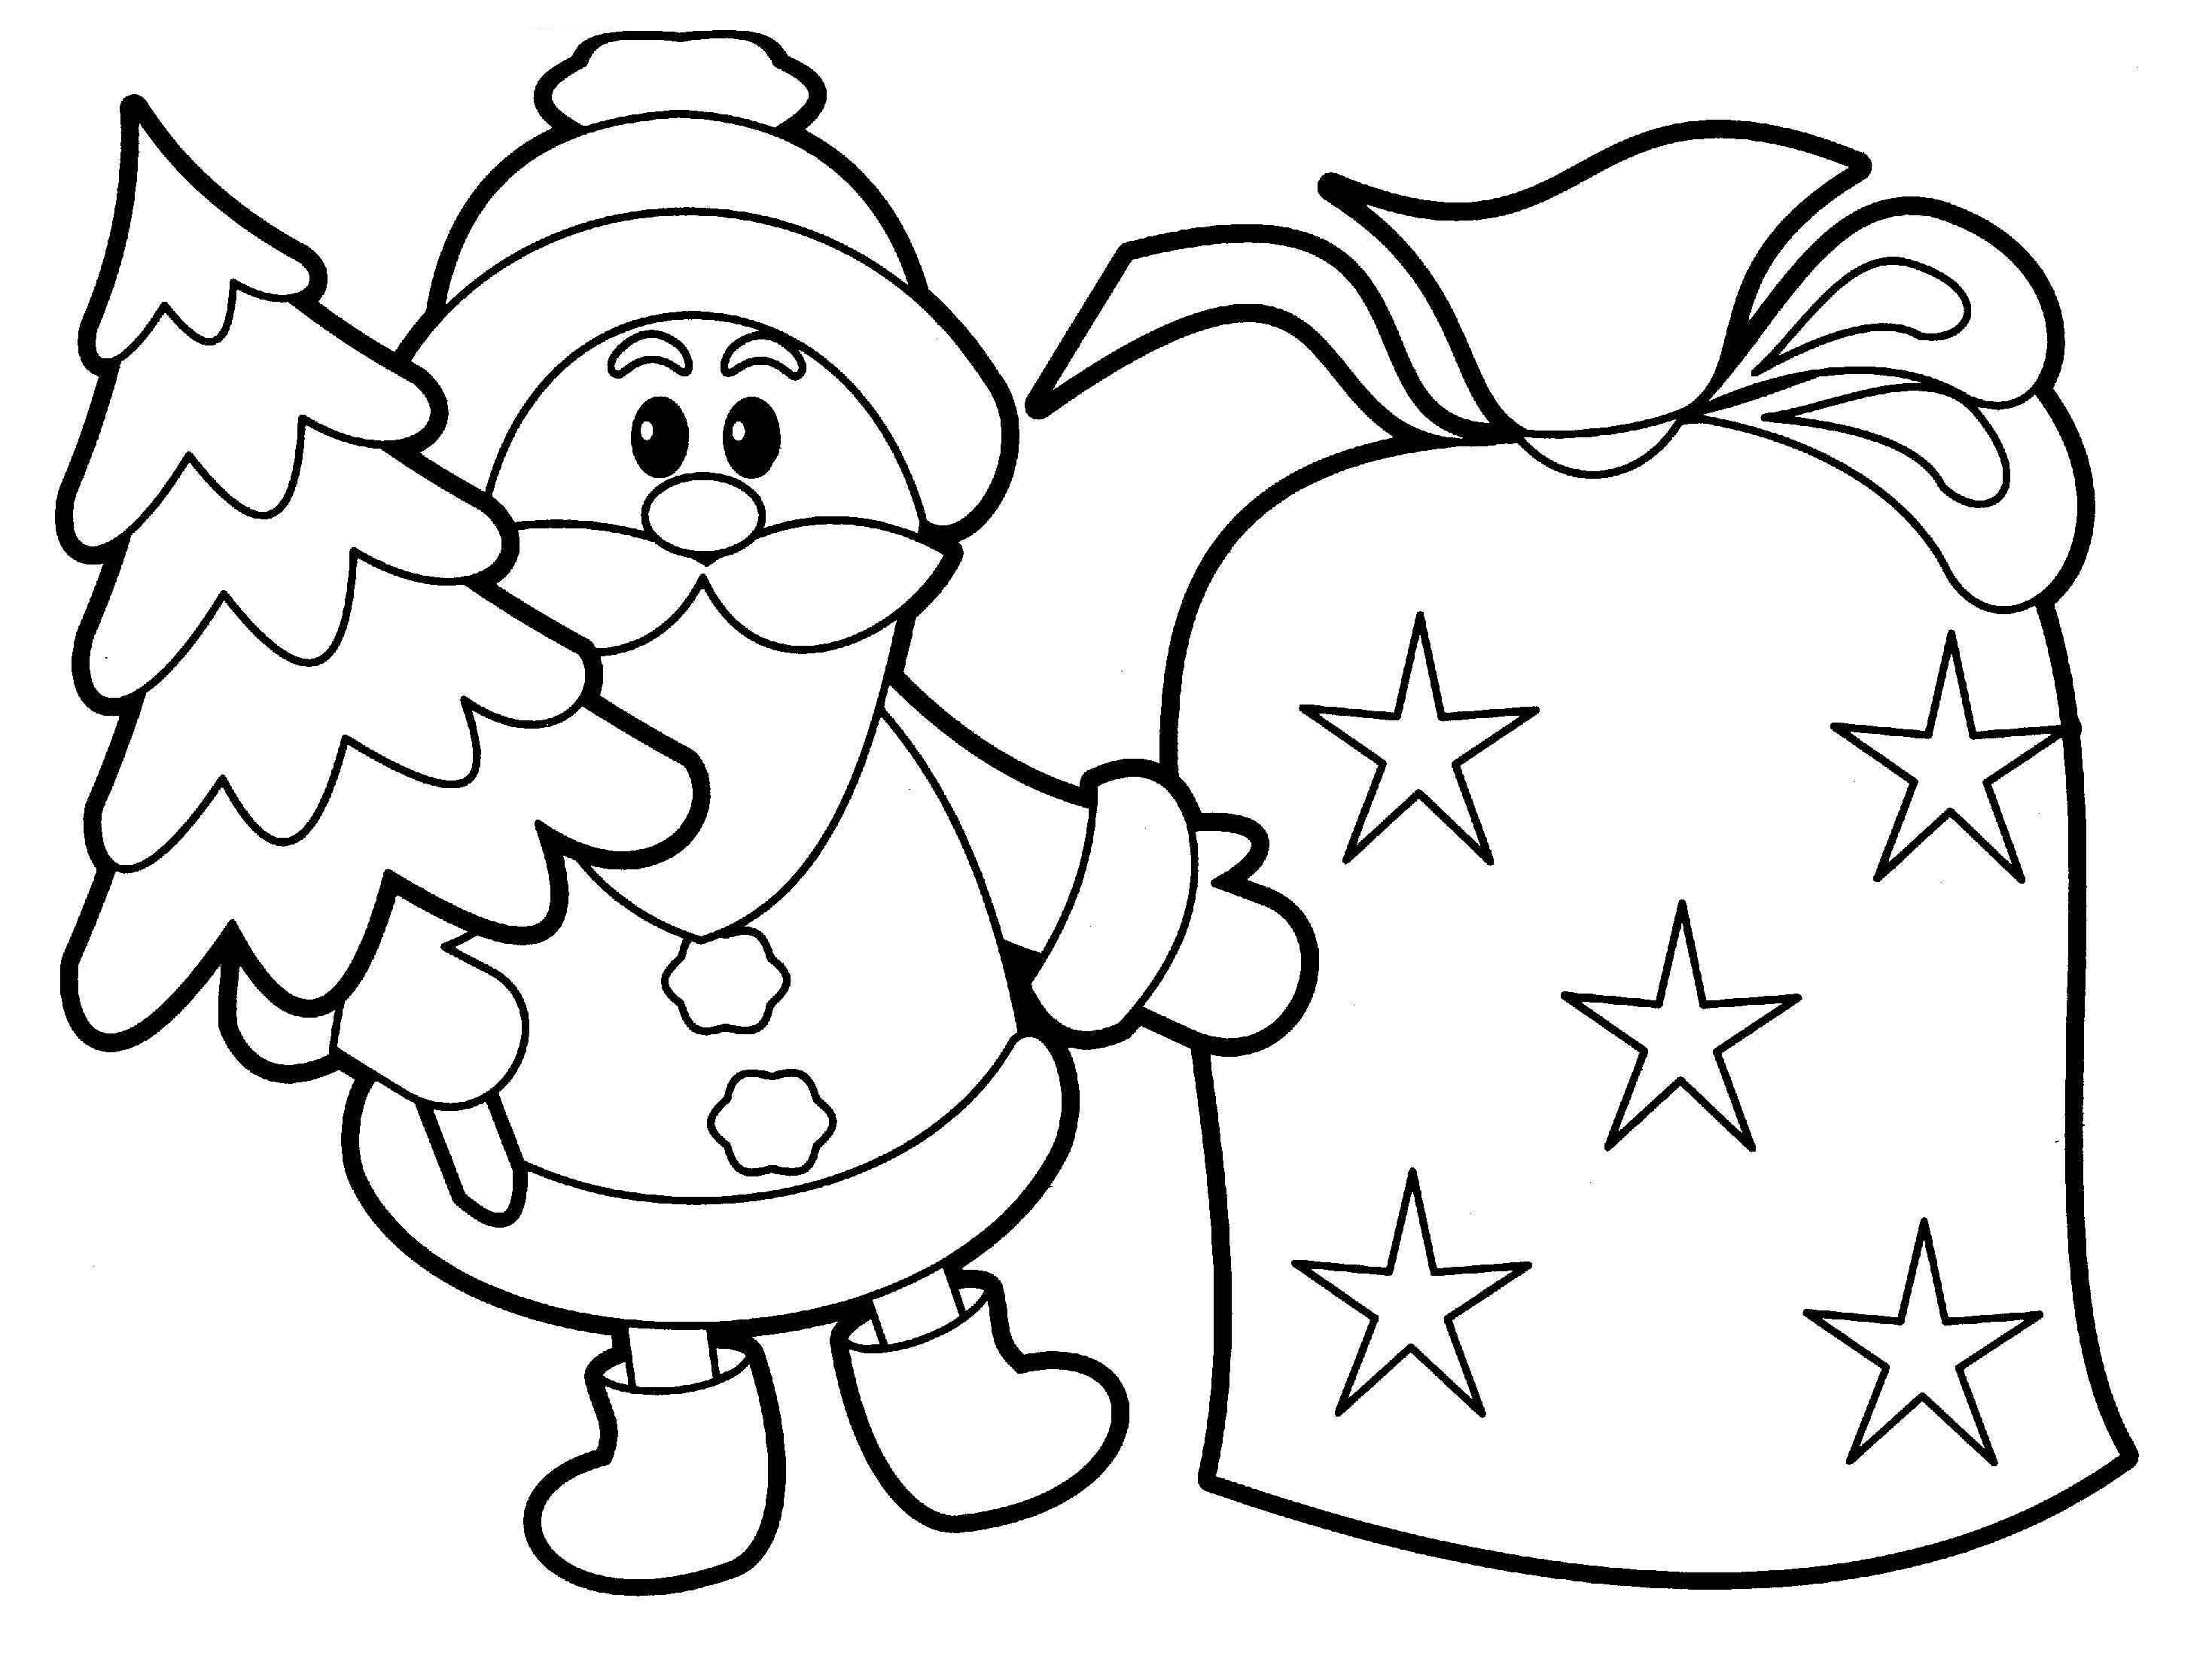 34 Preschool Coloring Pages Christmas Easy Pre K Christmas Coloring Download Of Free Preschool Coloring Pages Page for Kindergarten School Download